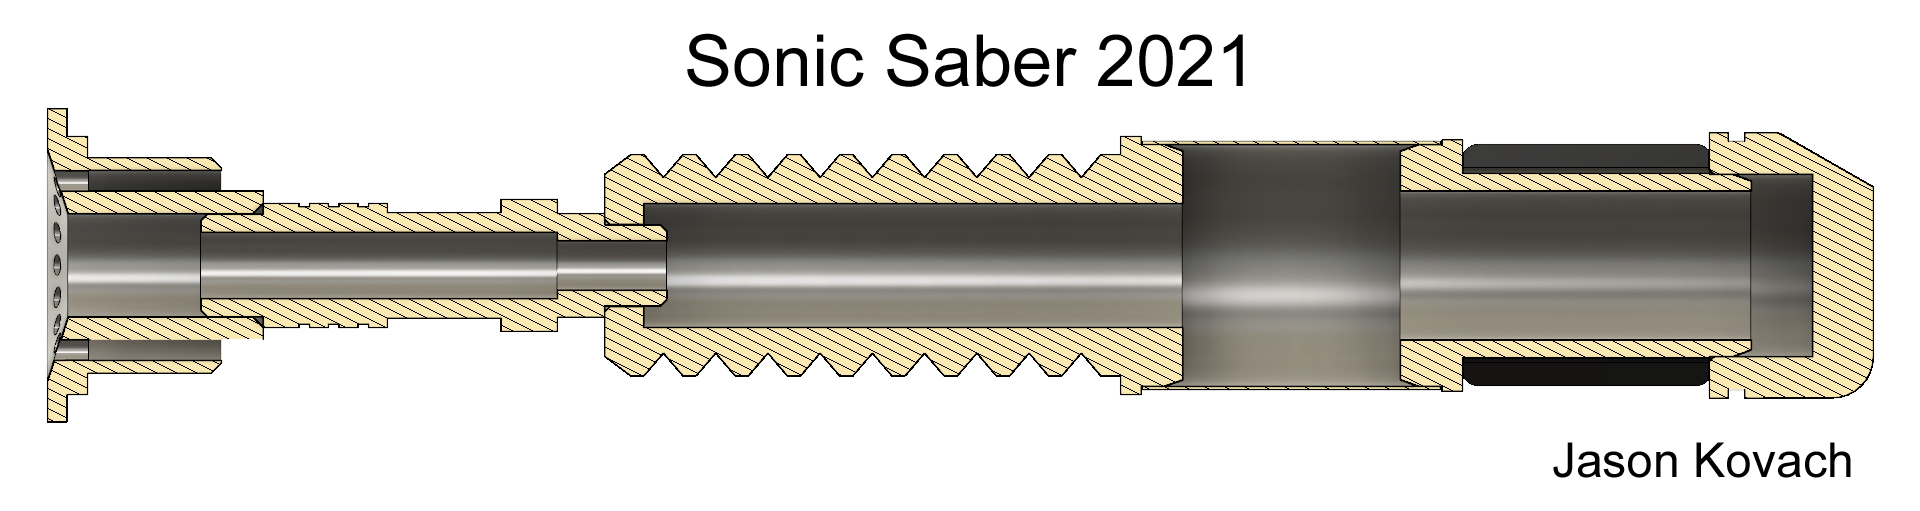 sonic saber crossection view.jpg